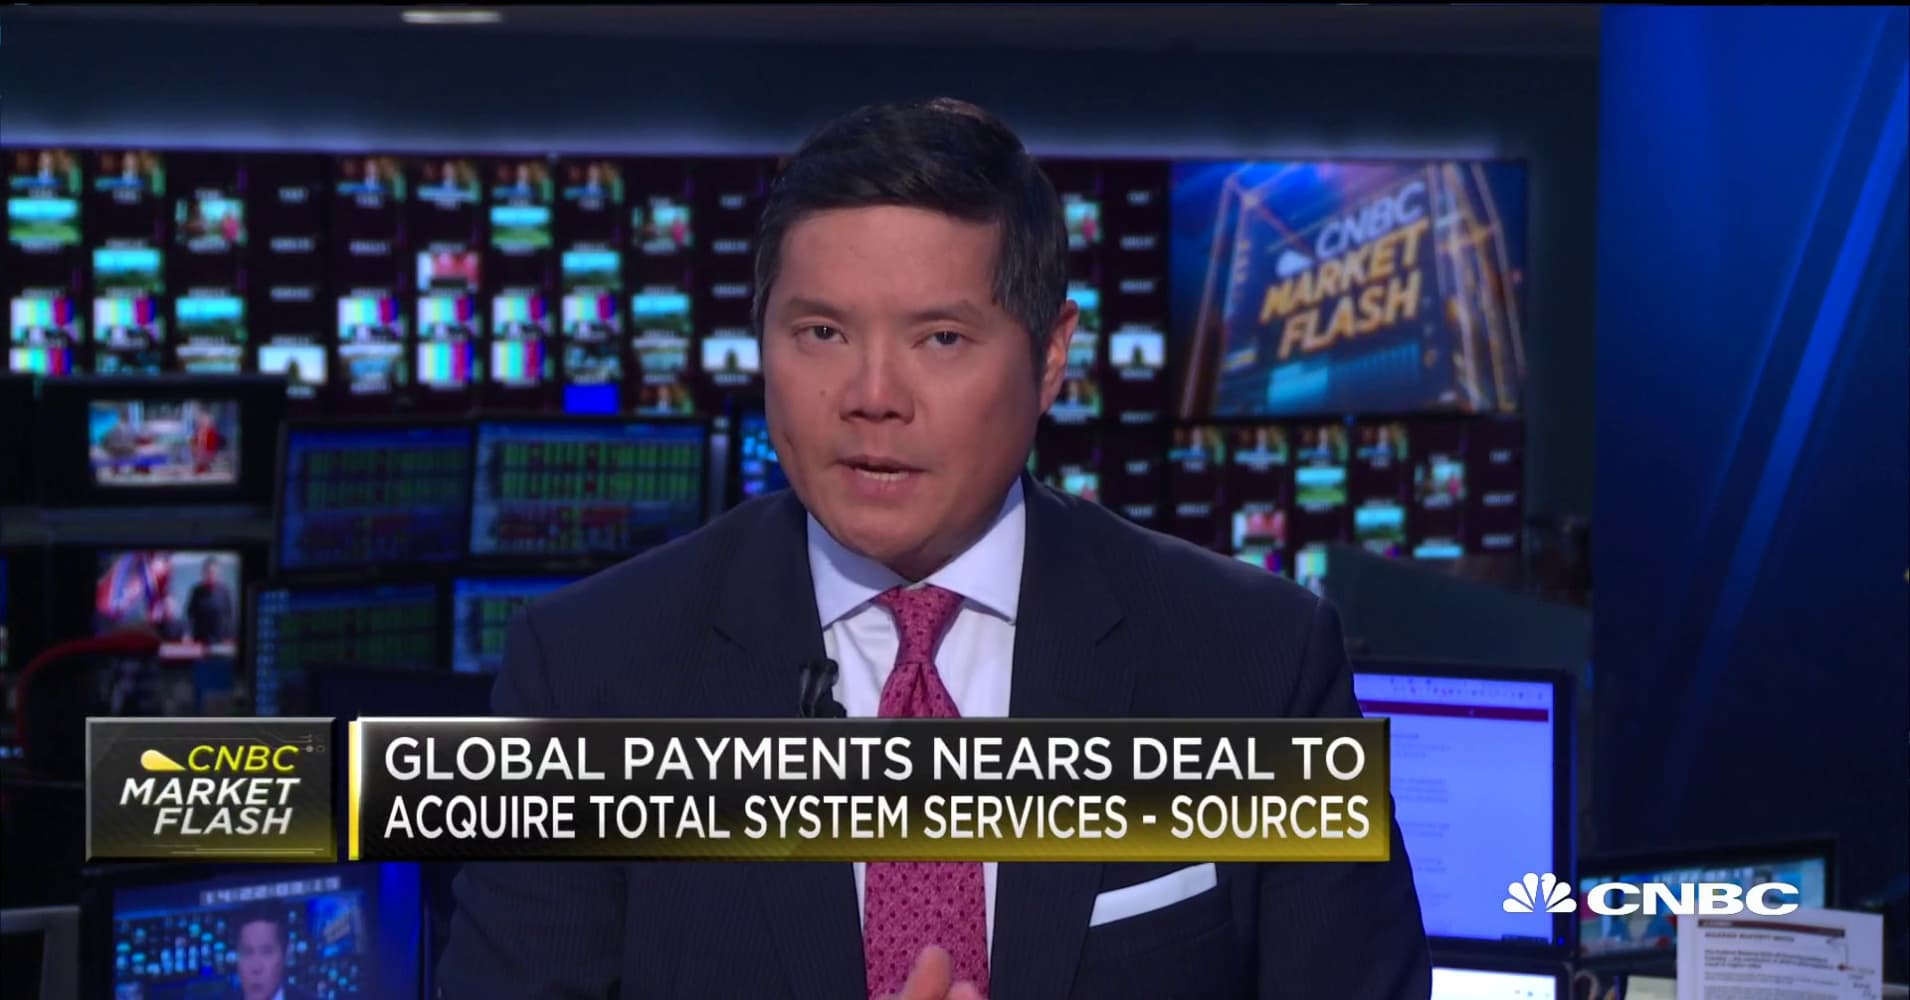 Global Payments near deal to acquire Total System Services